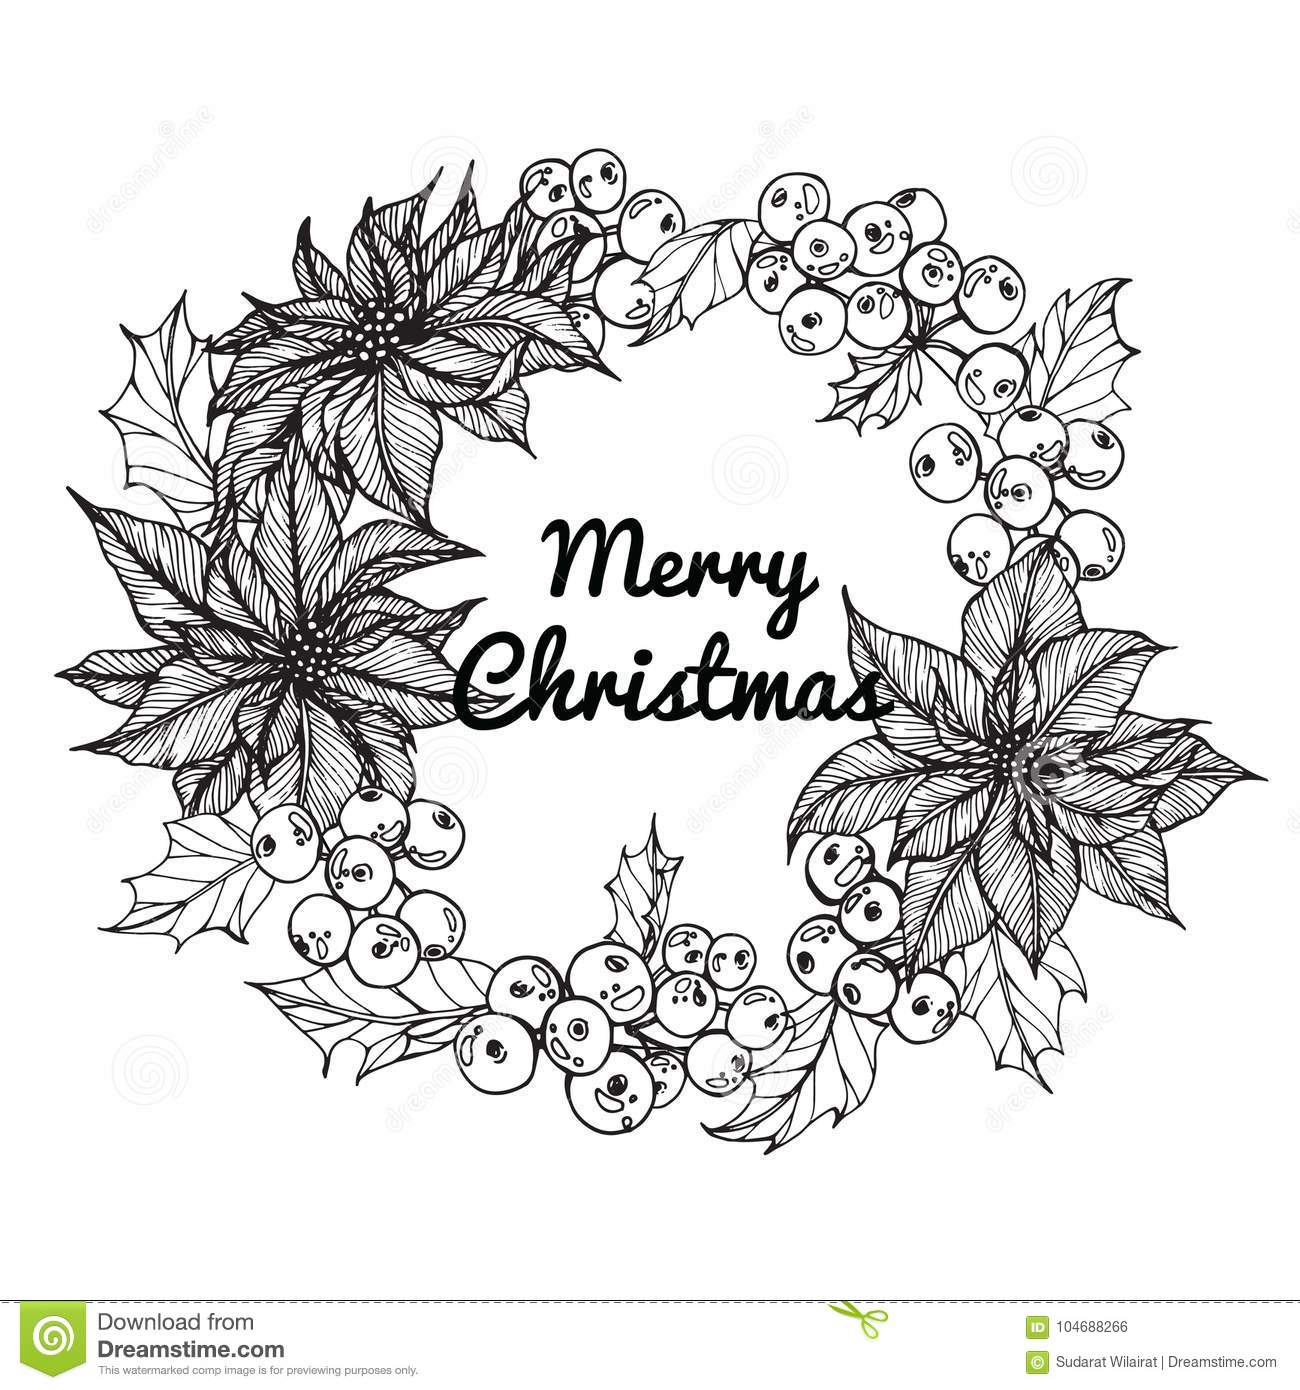 Christmas Day Drawing Images.Wreath Flower Drawing Illustration For Merry Christmas Day